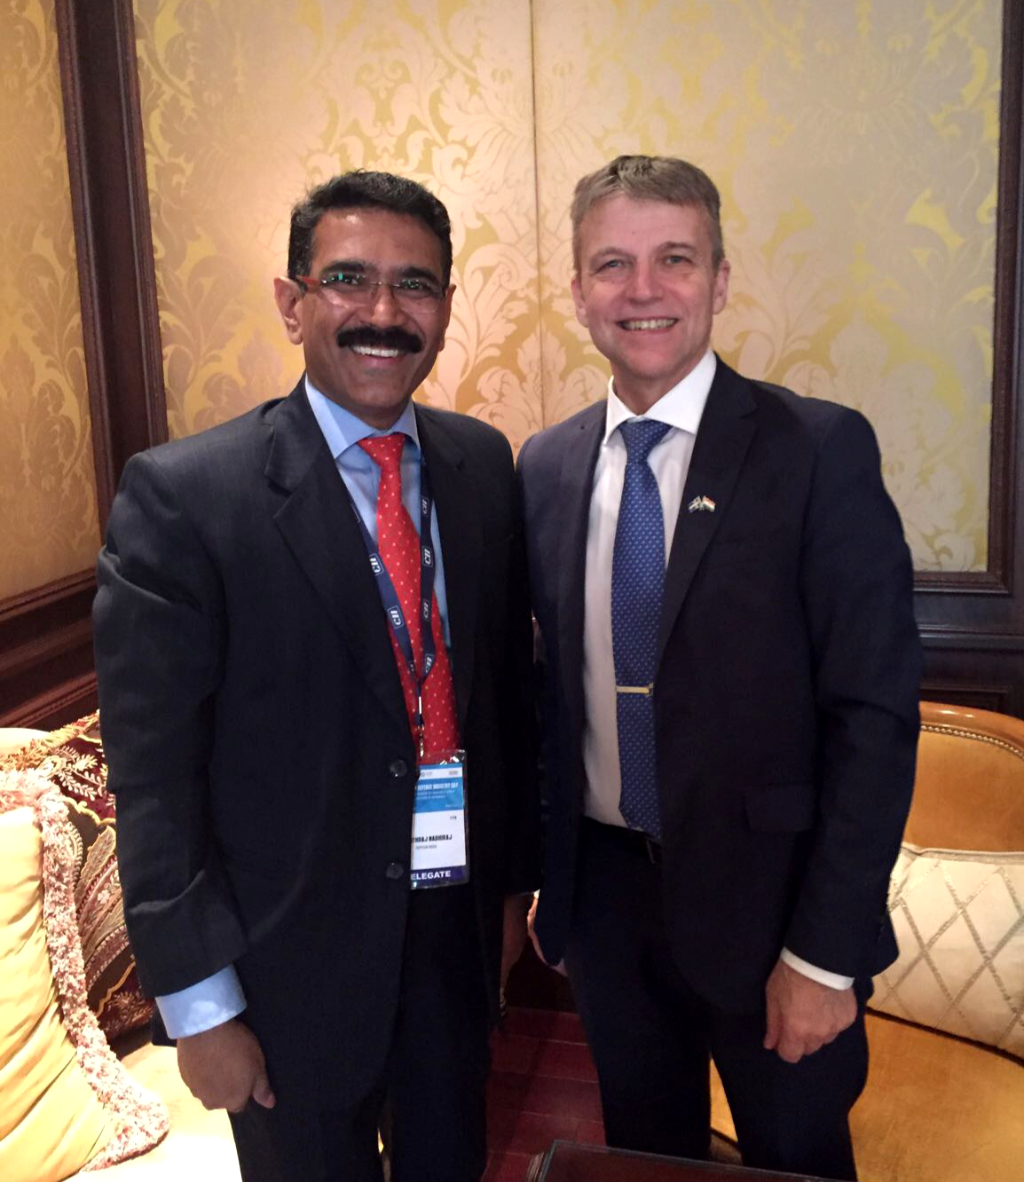 Mr Hardar Nabhiraj Ananthraj (Sepson India Pvt Ltd) and State Secretary for the Swedish Ministry of Defence Mr Jan Salestrand